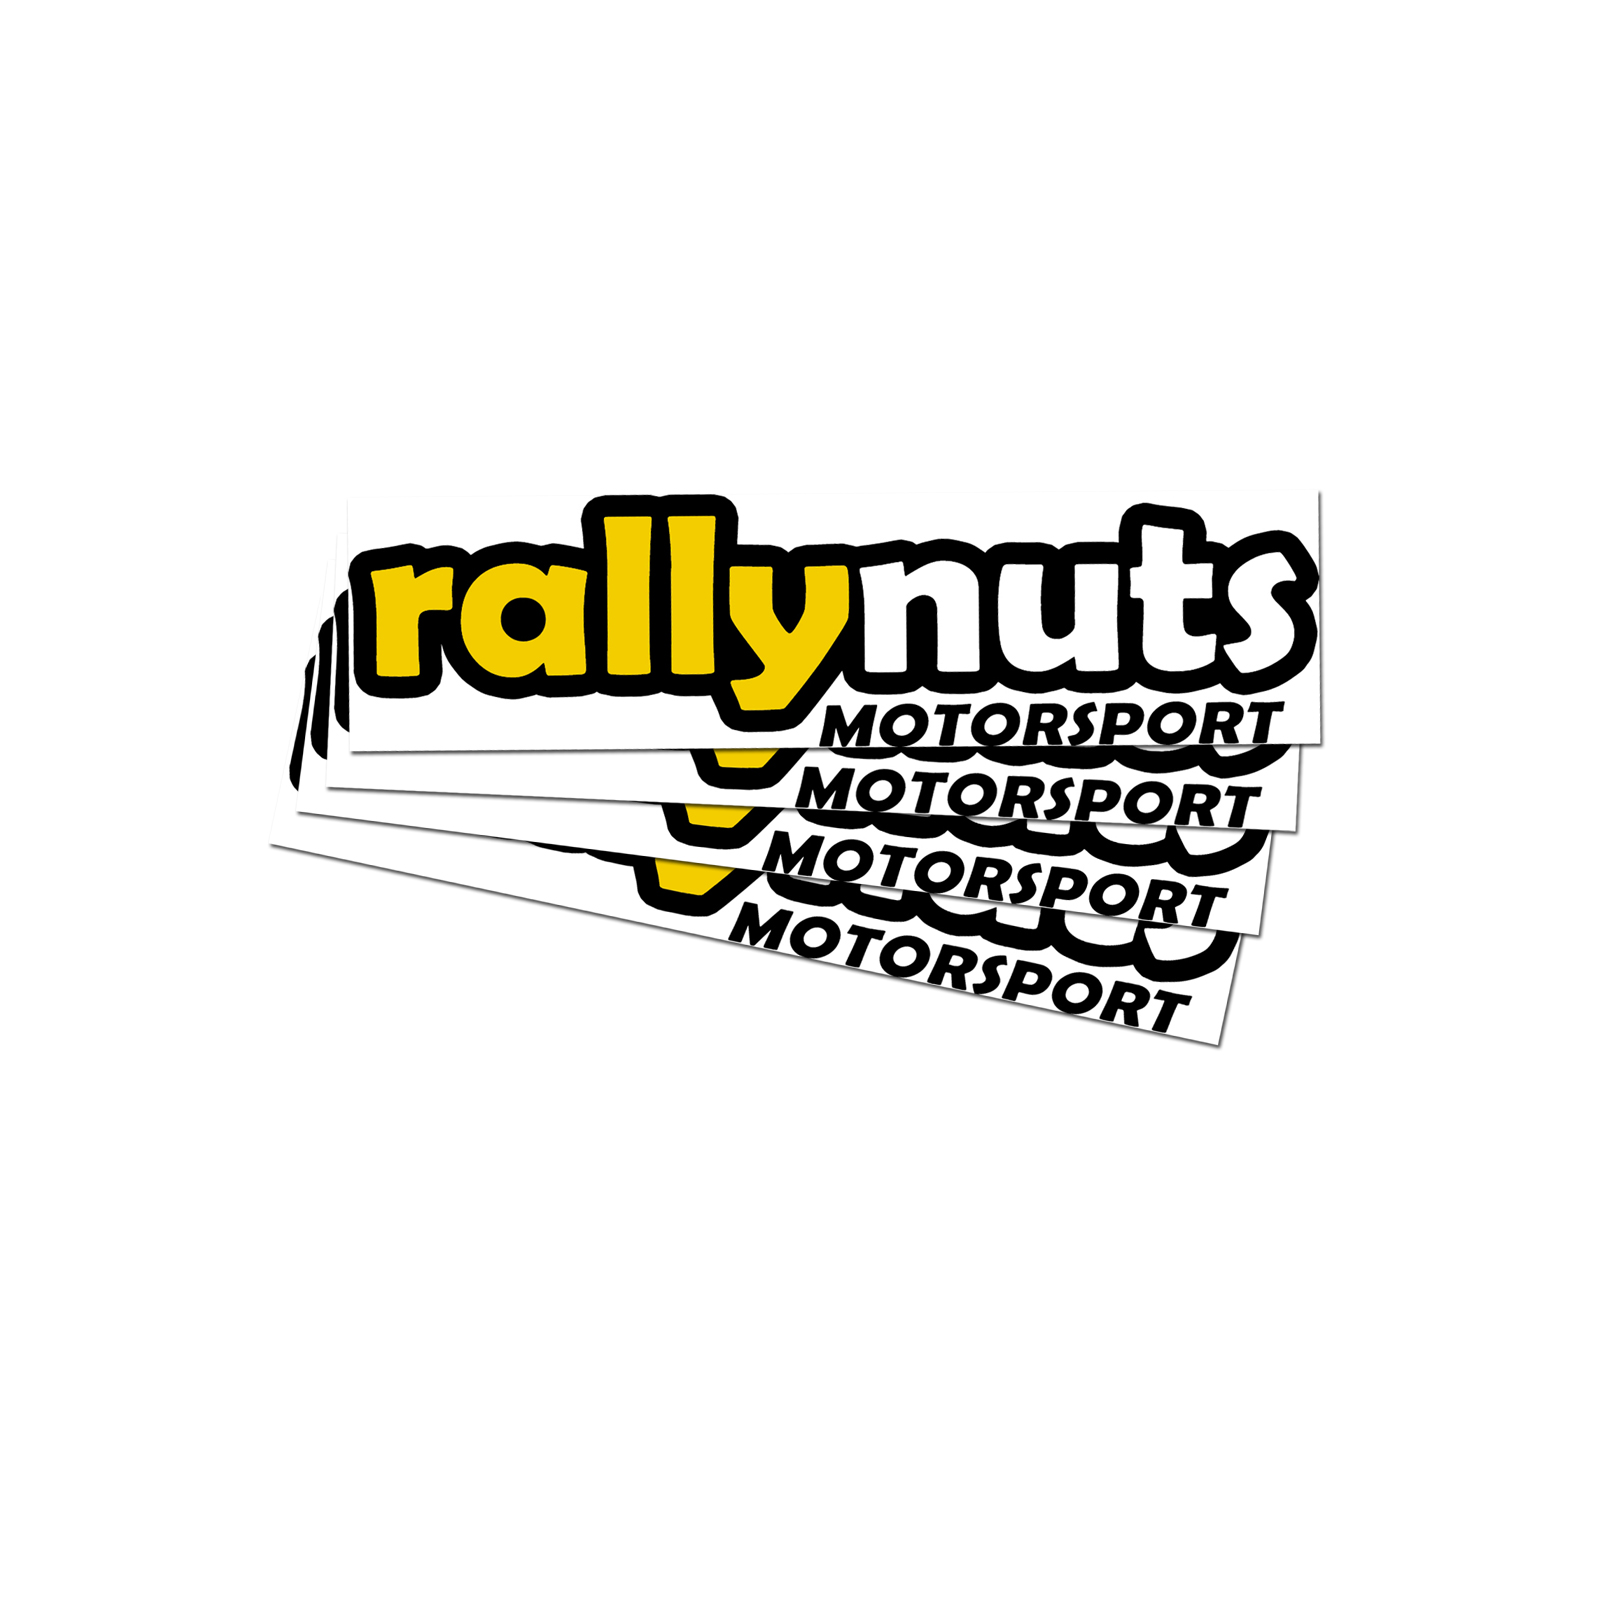 Rallynuts small self adhesive sticker 2 pack